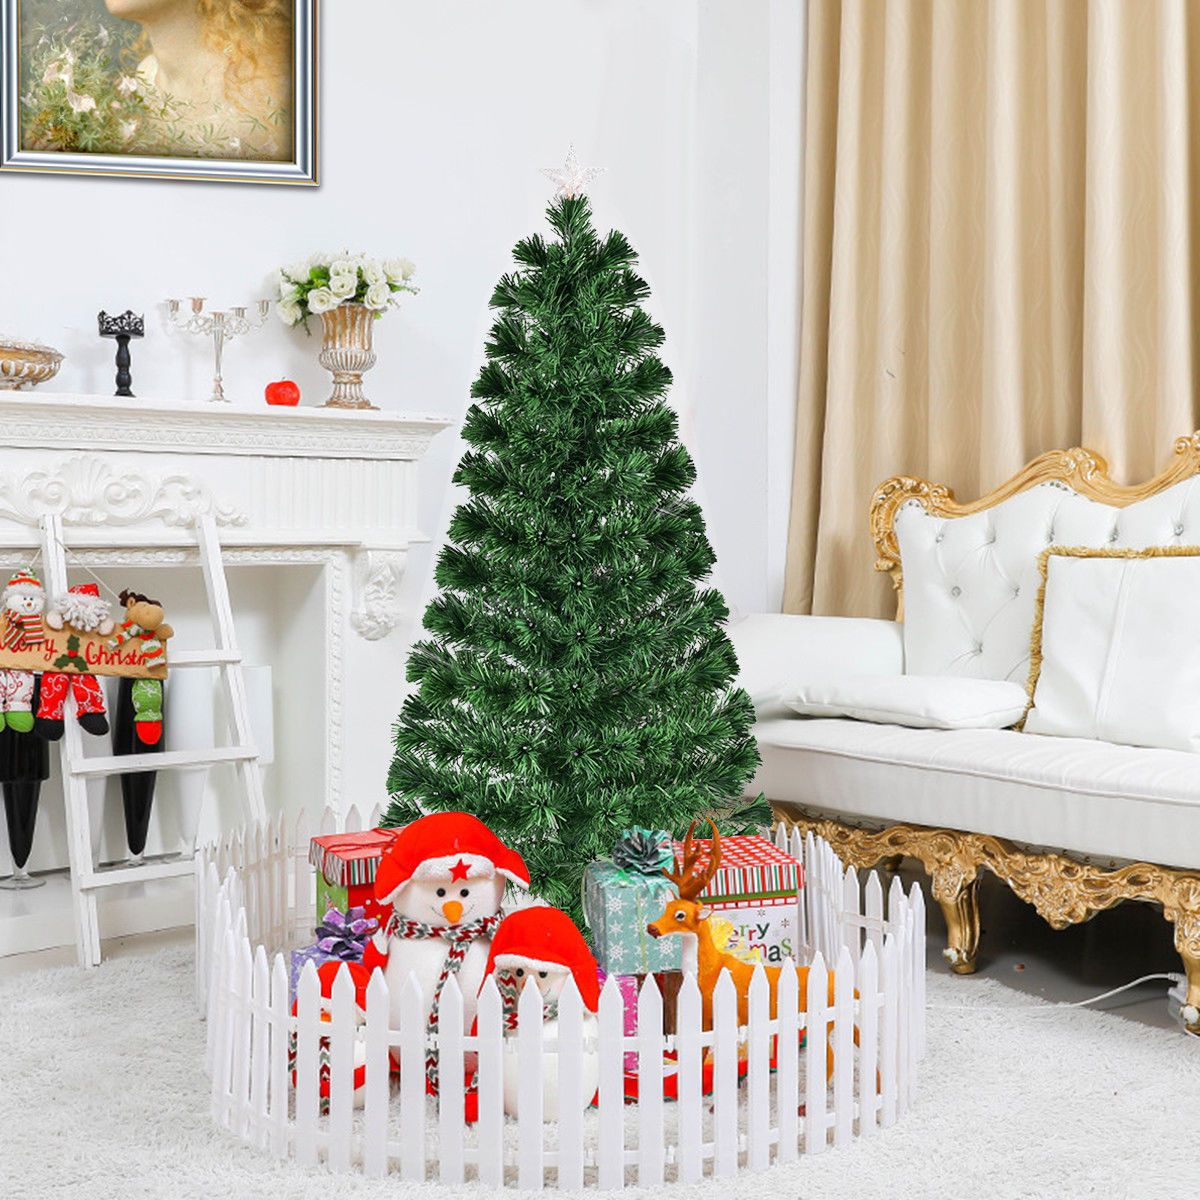 5' / 6' Fiber Optic Artificial Christmas Tree with LED